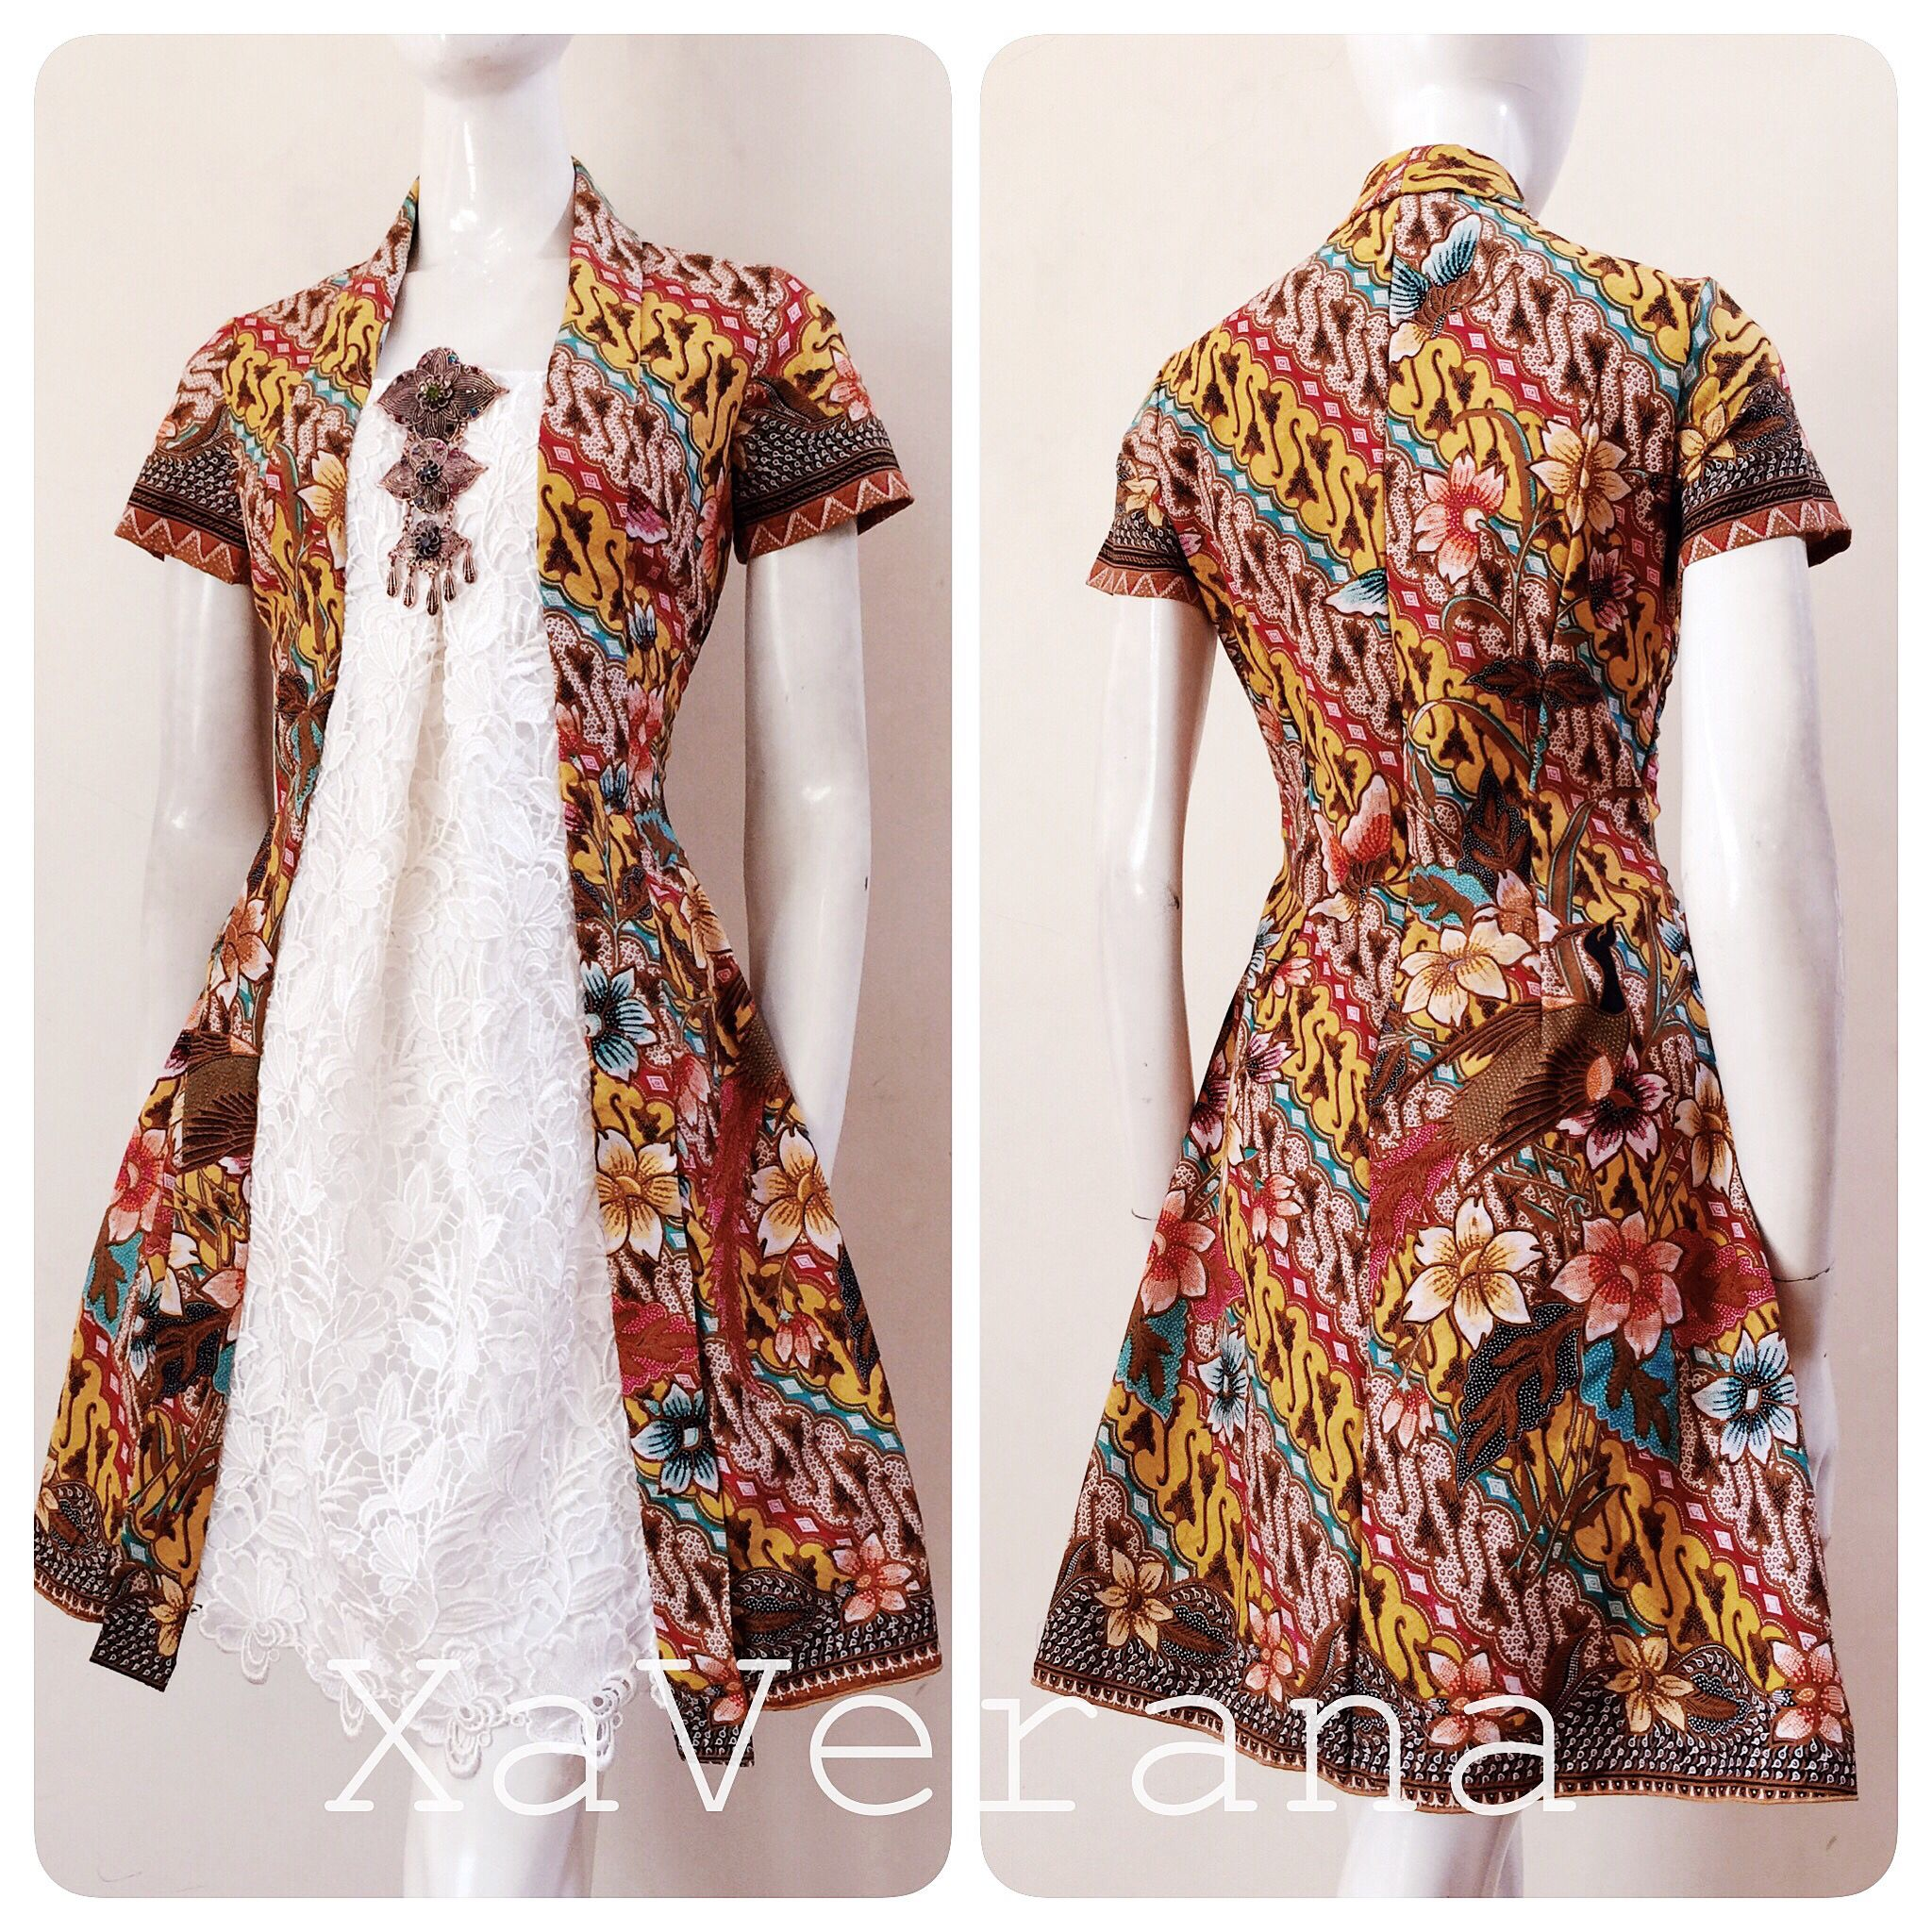 Kebaya kutubaru dress Instagram xaverana